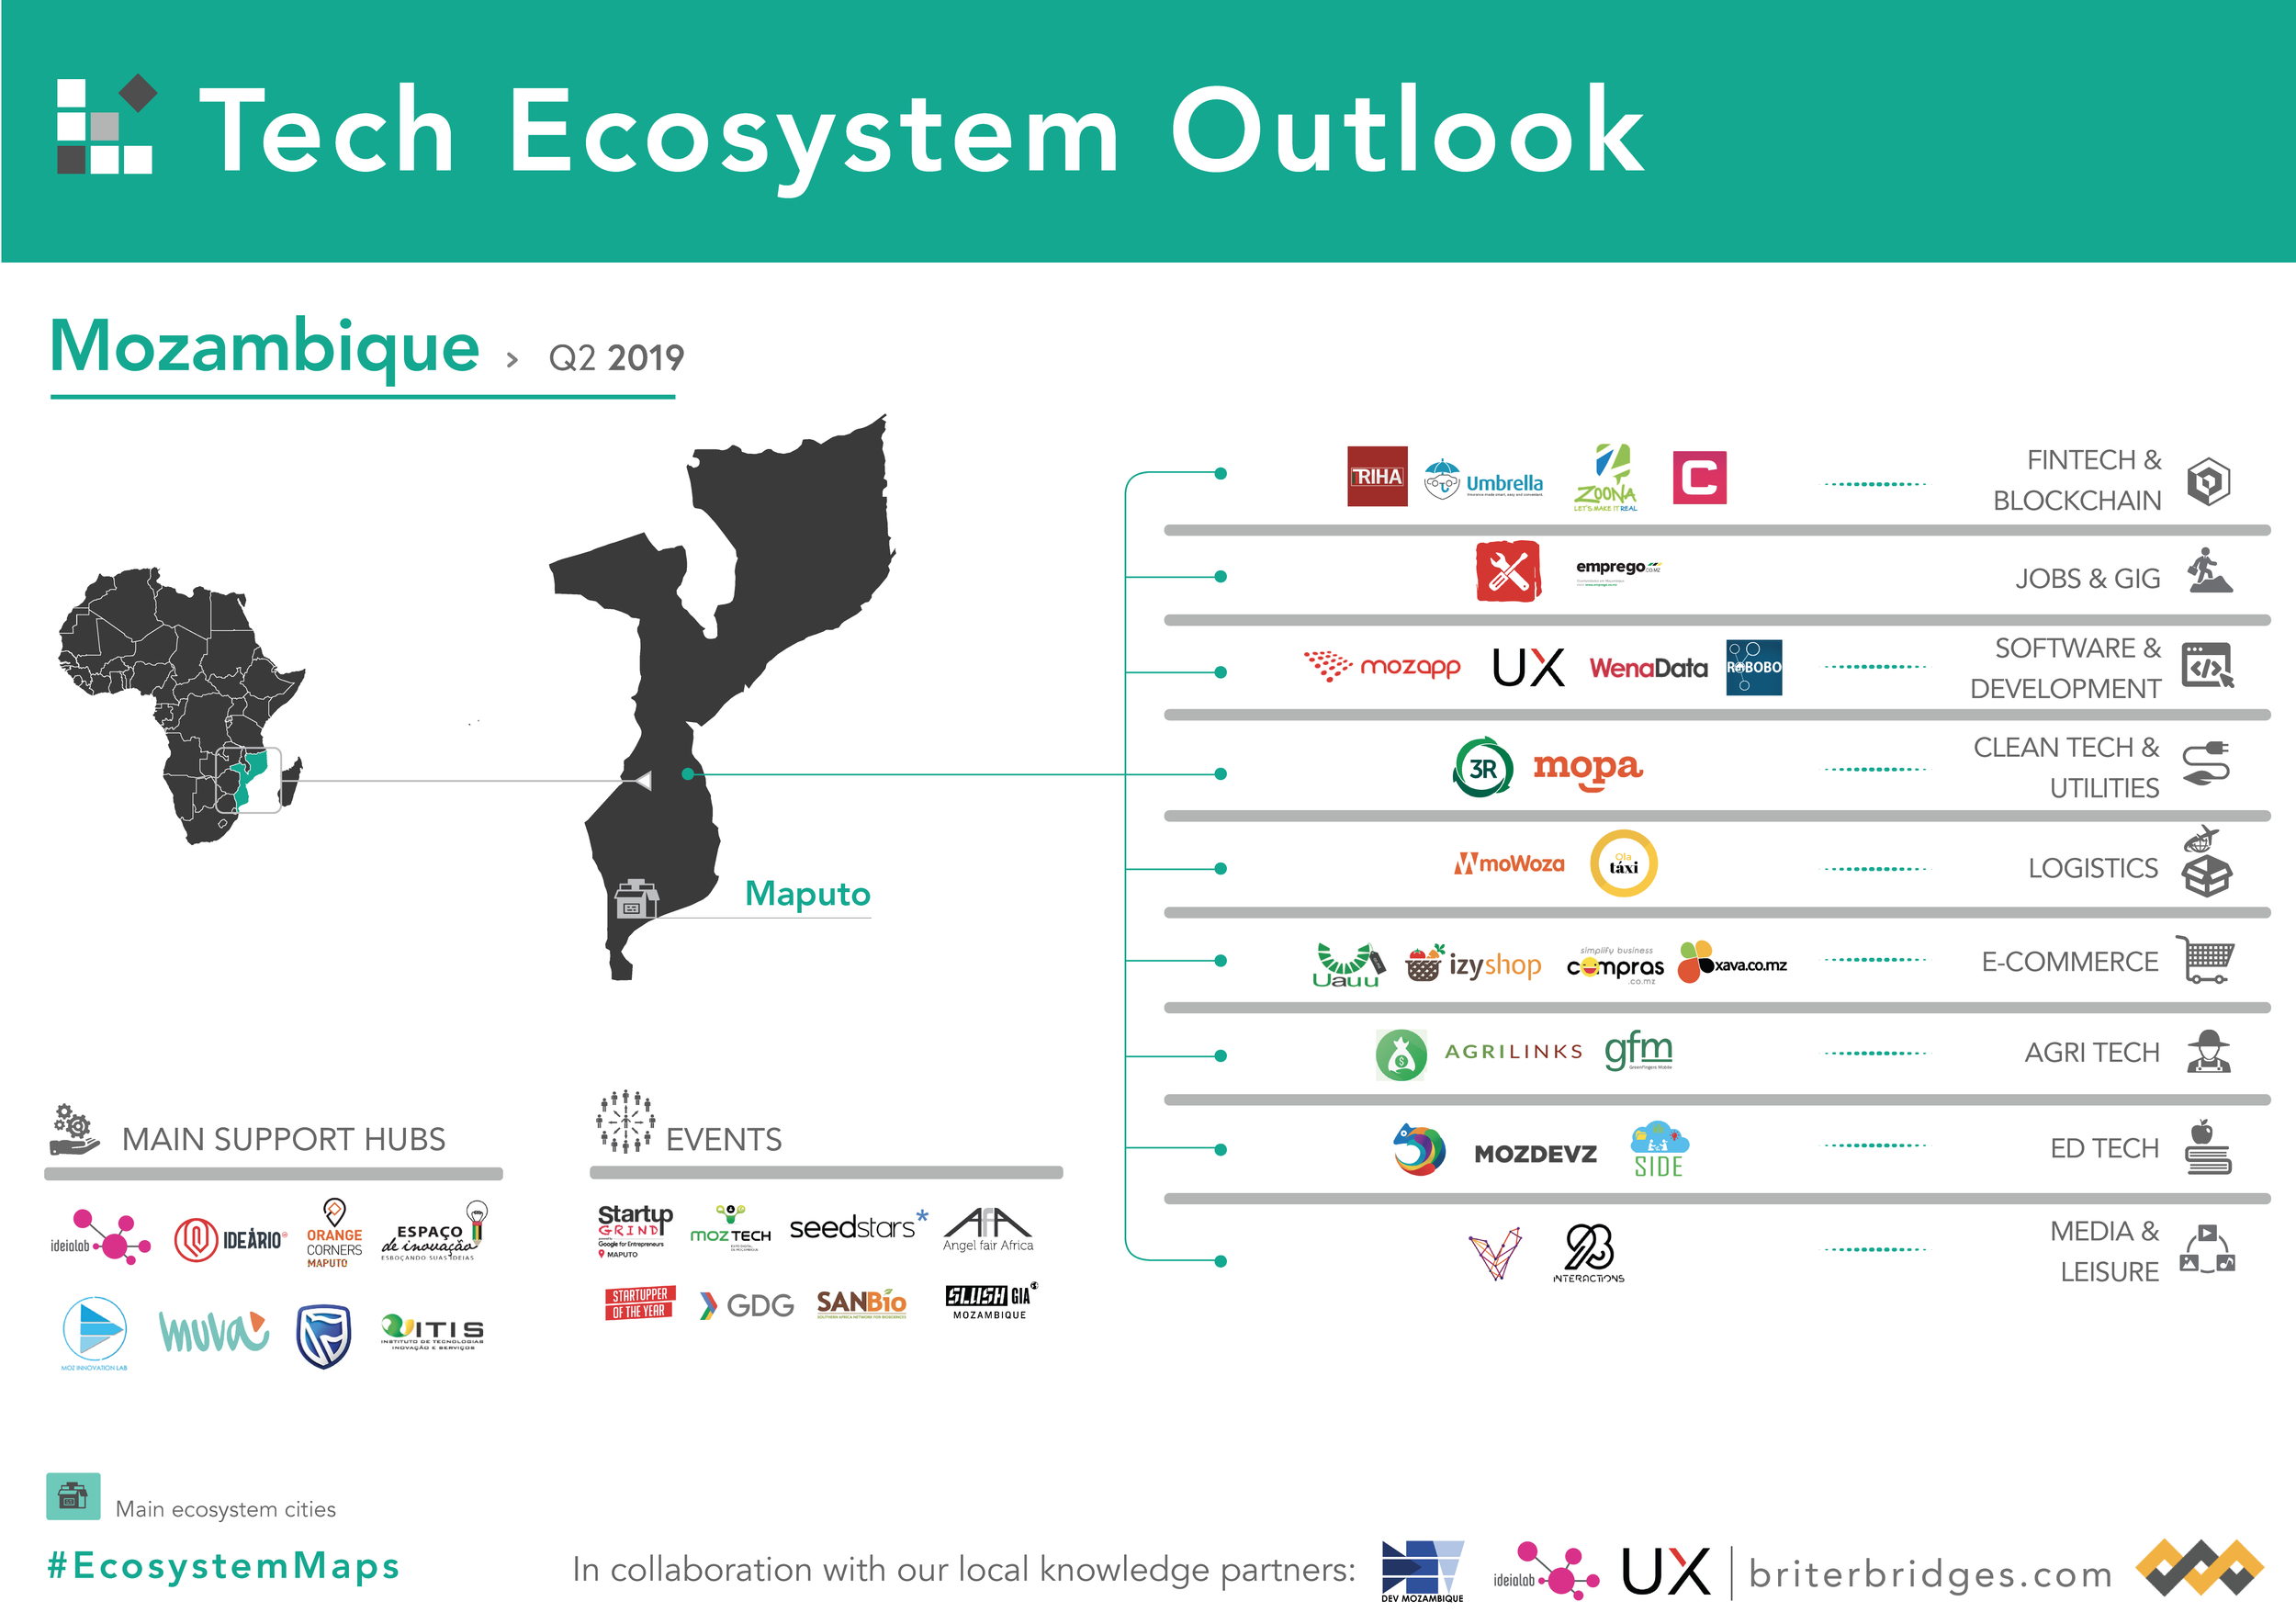 Mozambique's Tech Ecosystem Map